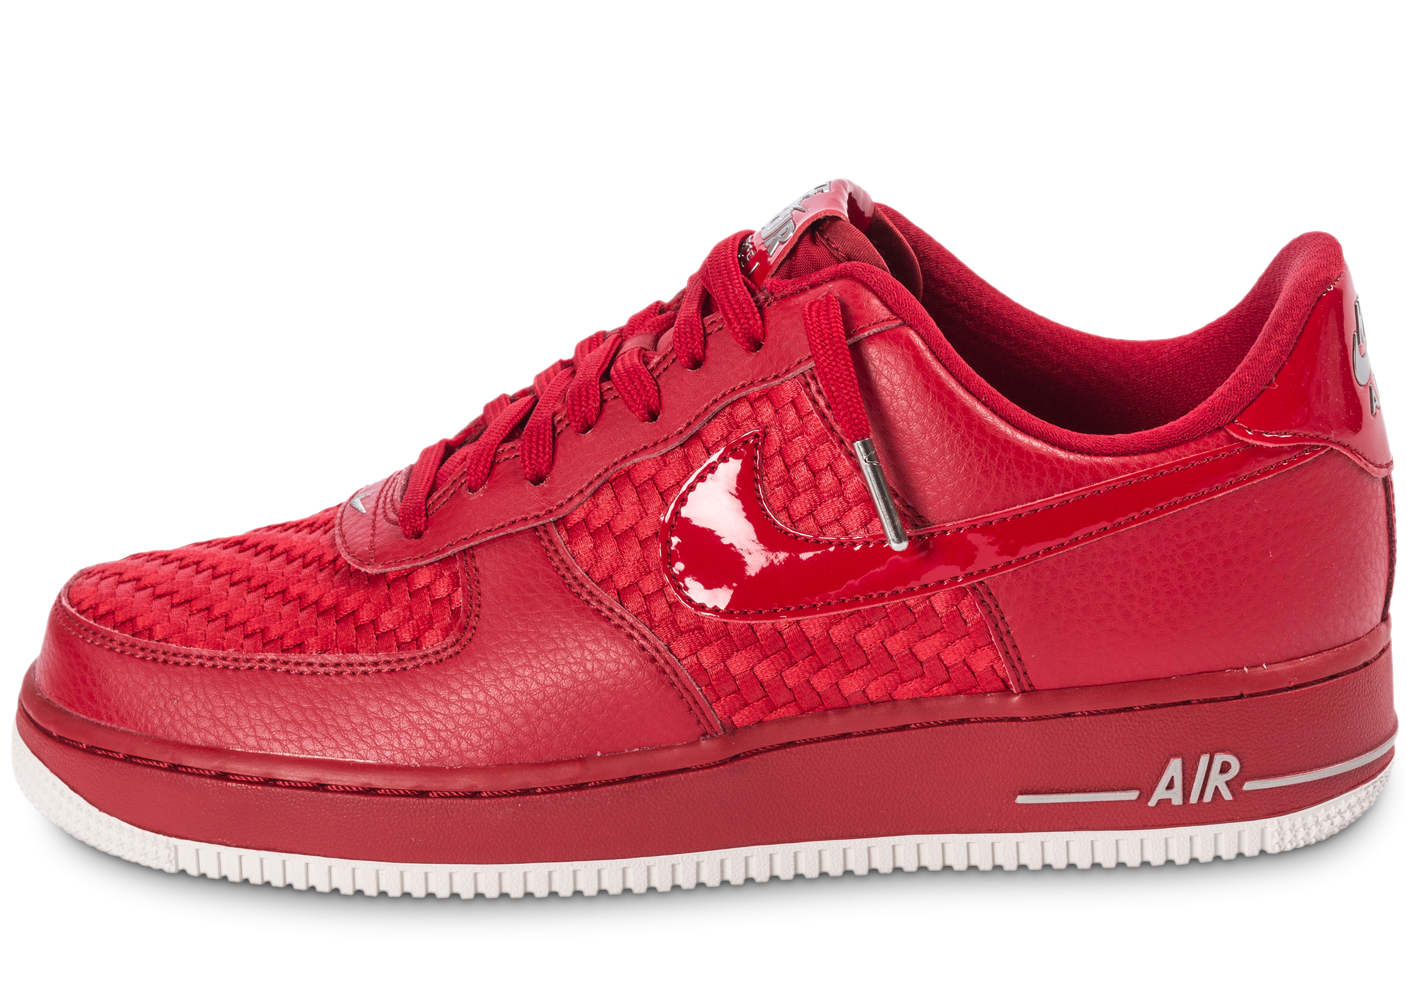 Nike Air Force 1 LV8 Low rouge - Chaussures Baskets homme - Chausport